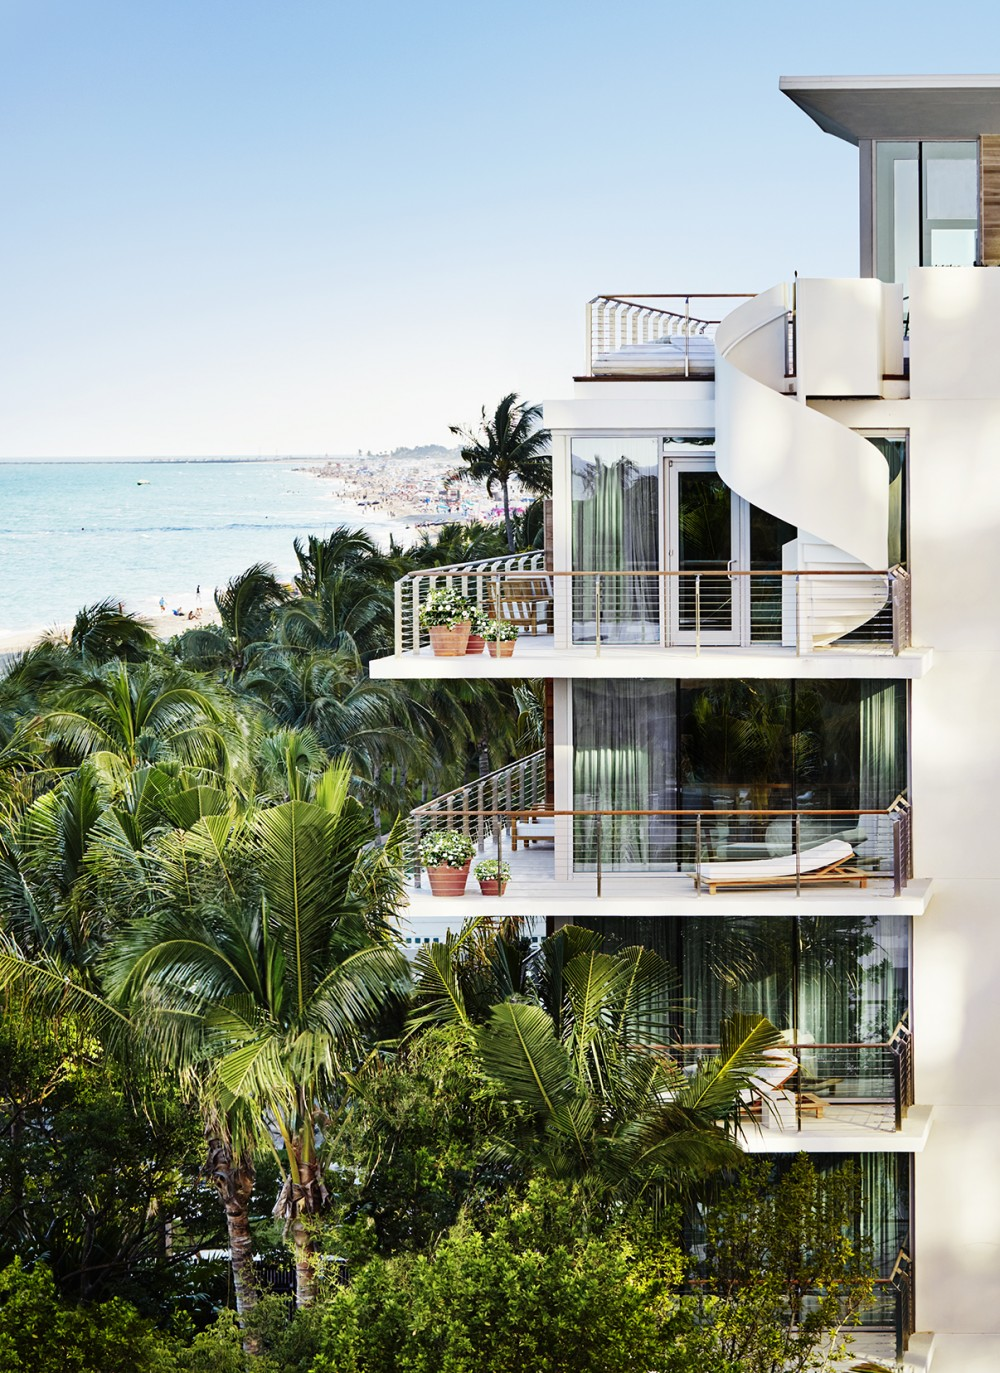 Design hotel find miami beach edition melting butter for Design hotels 2015